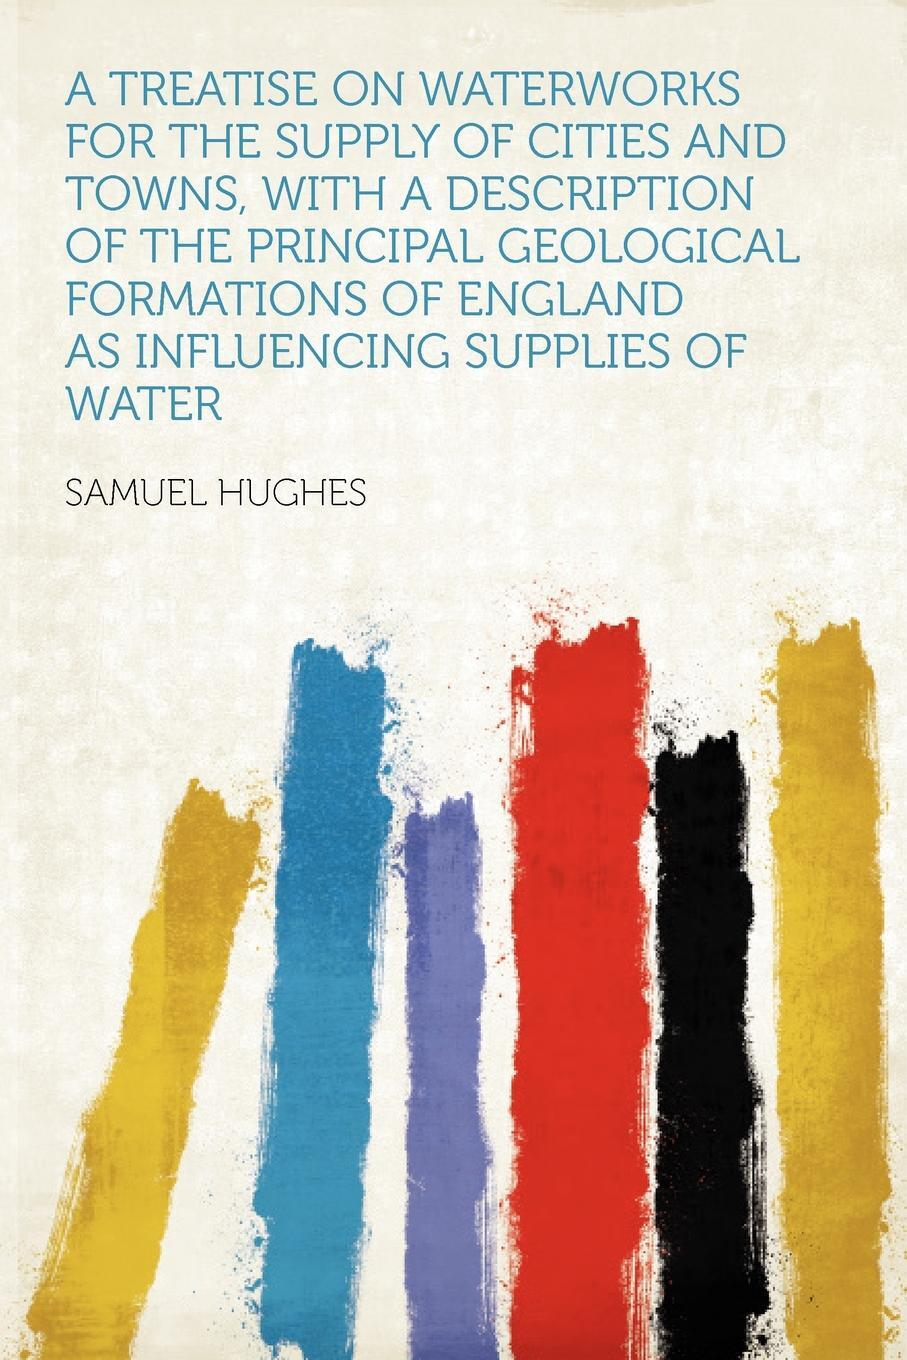 A Treatise on Waterworks for the Supply of Cities and Towns, With a Description of the Principal Geological Formations of England as Influencing Supplies of Water. Samuel Hughes